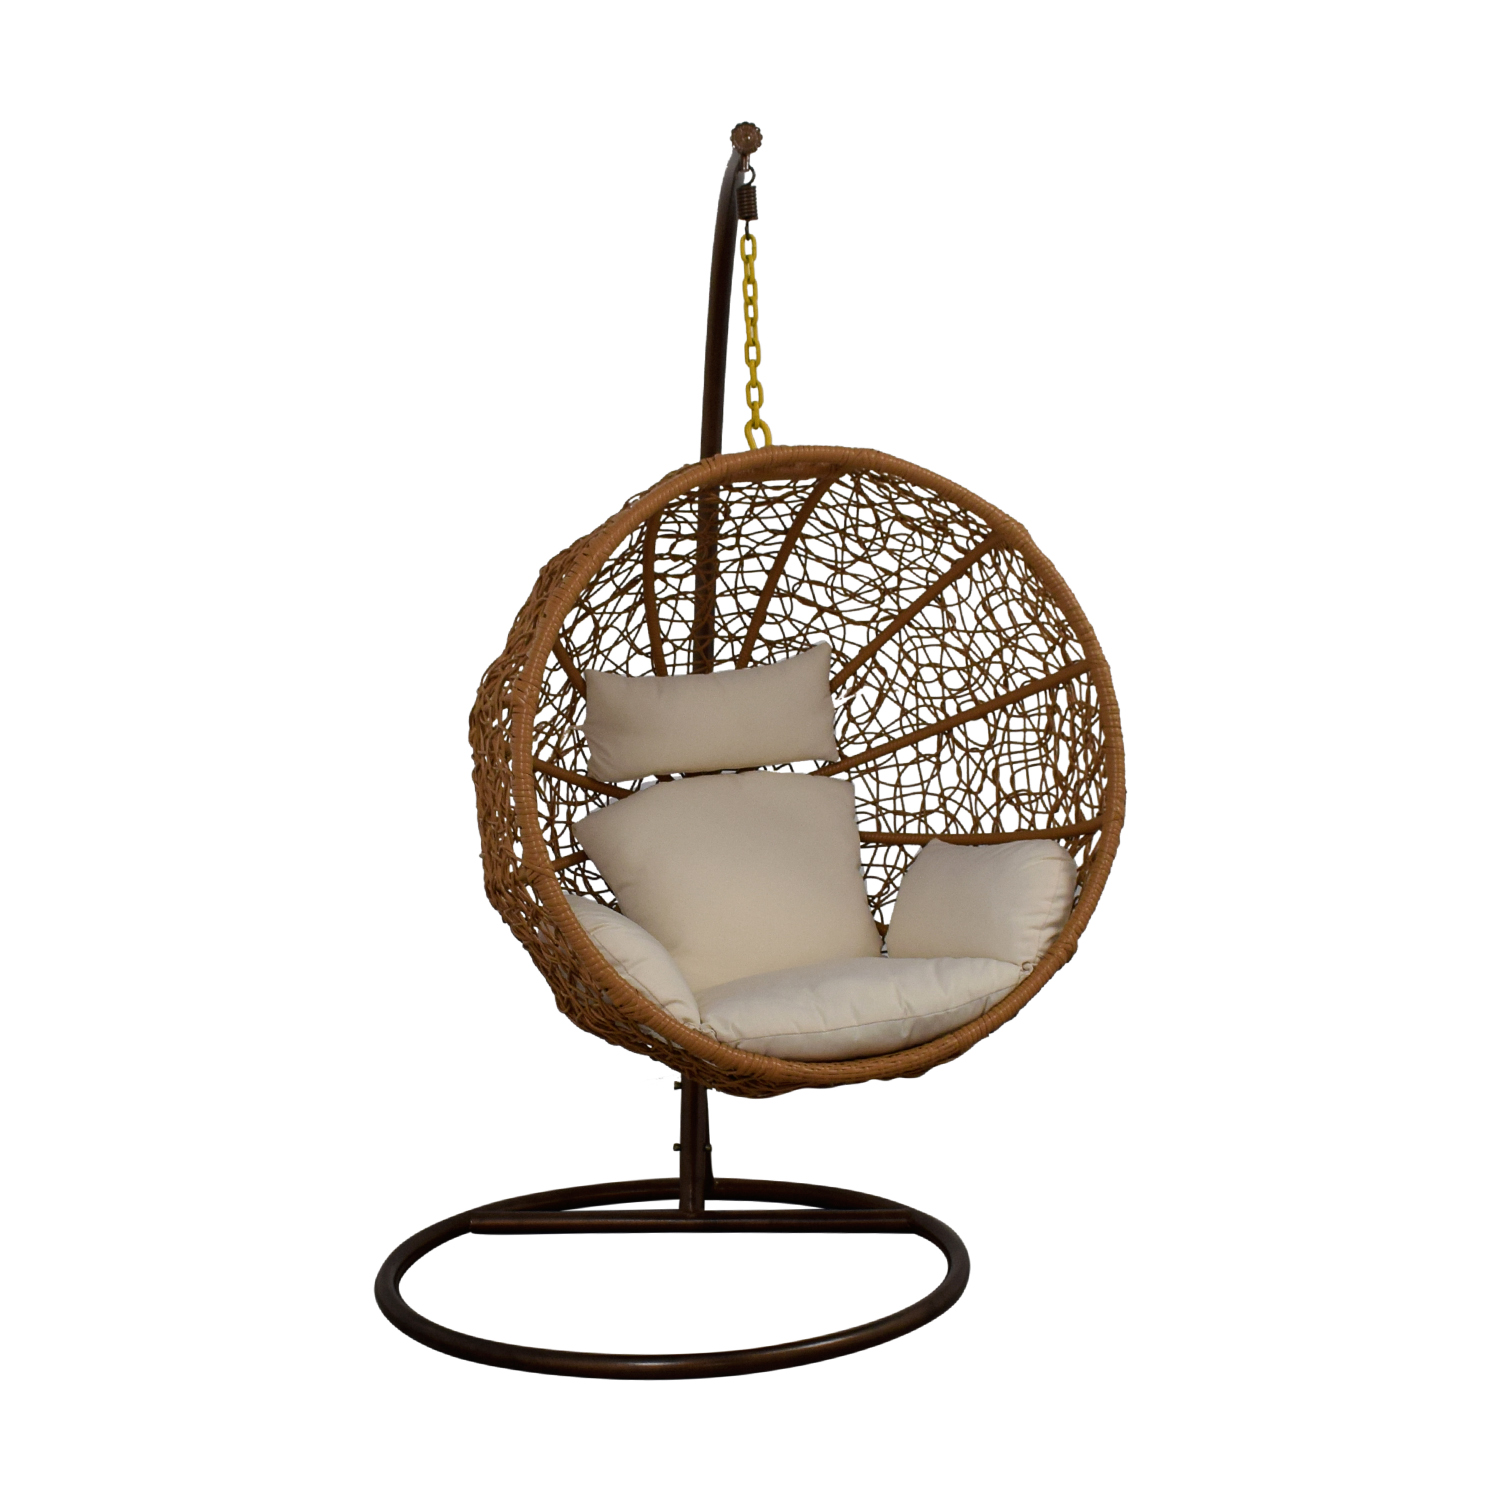 Zolo Zolo Outdoor Wicker Hanging Lounge Chair price